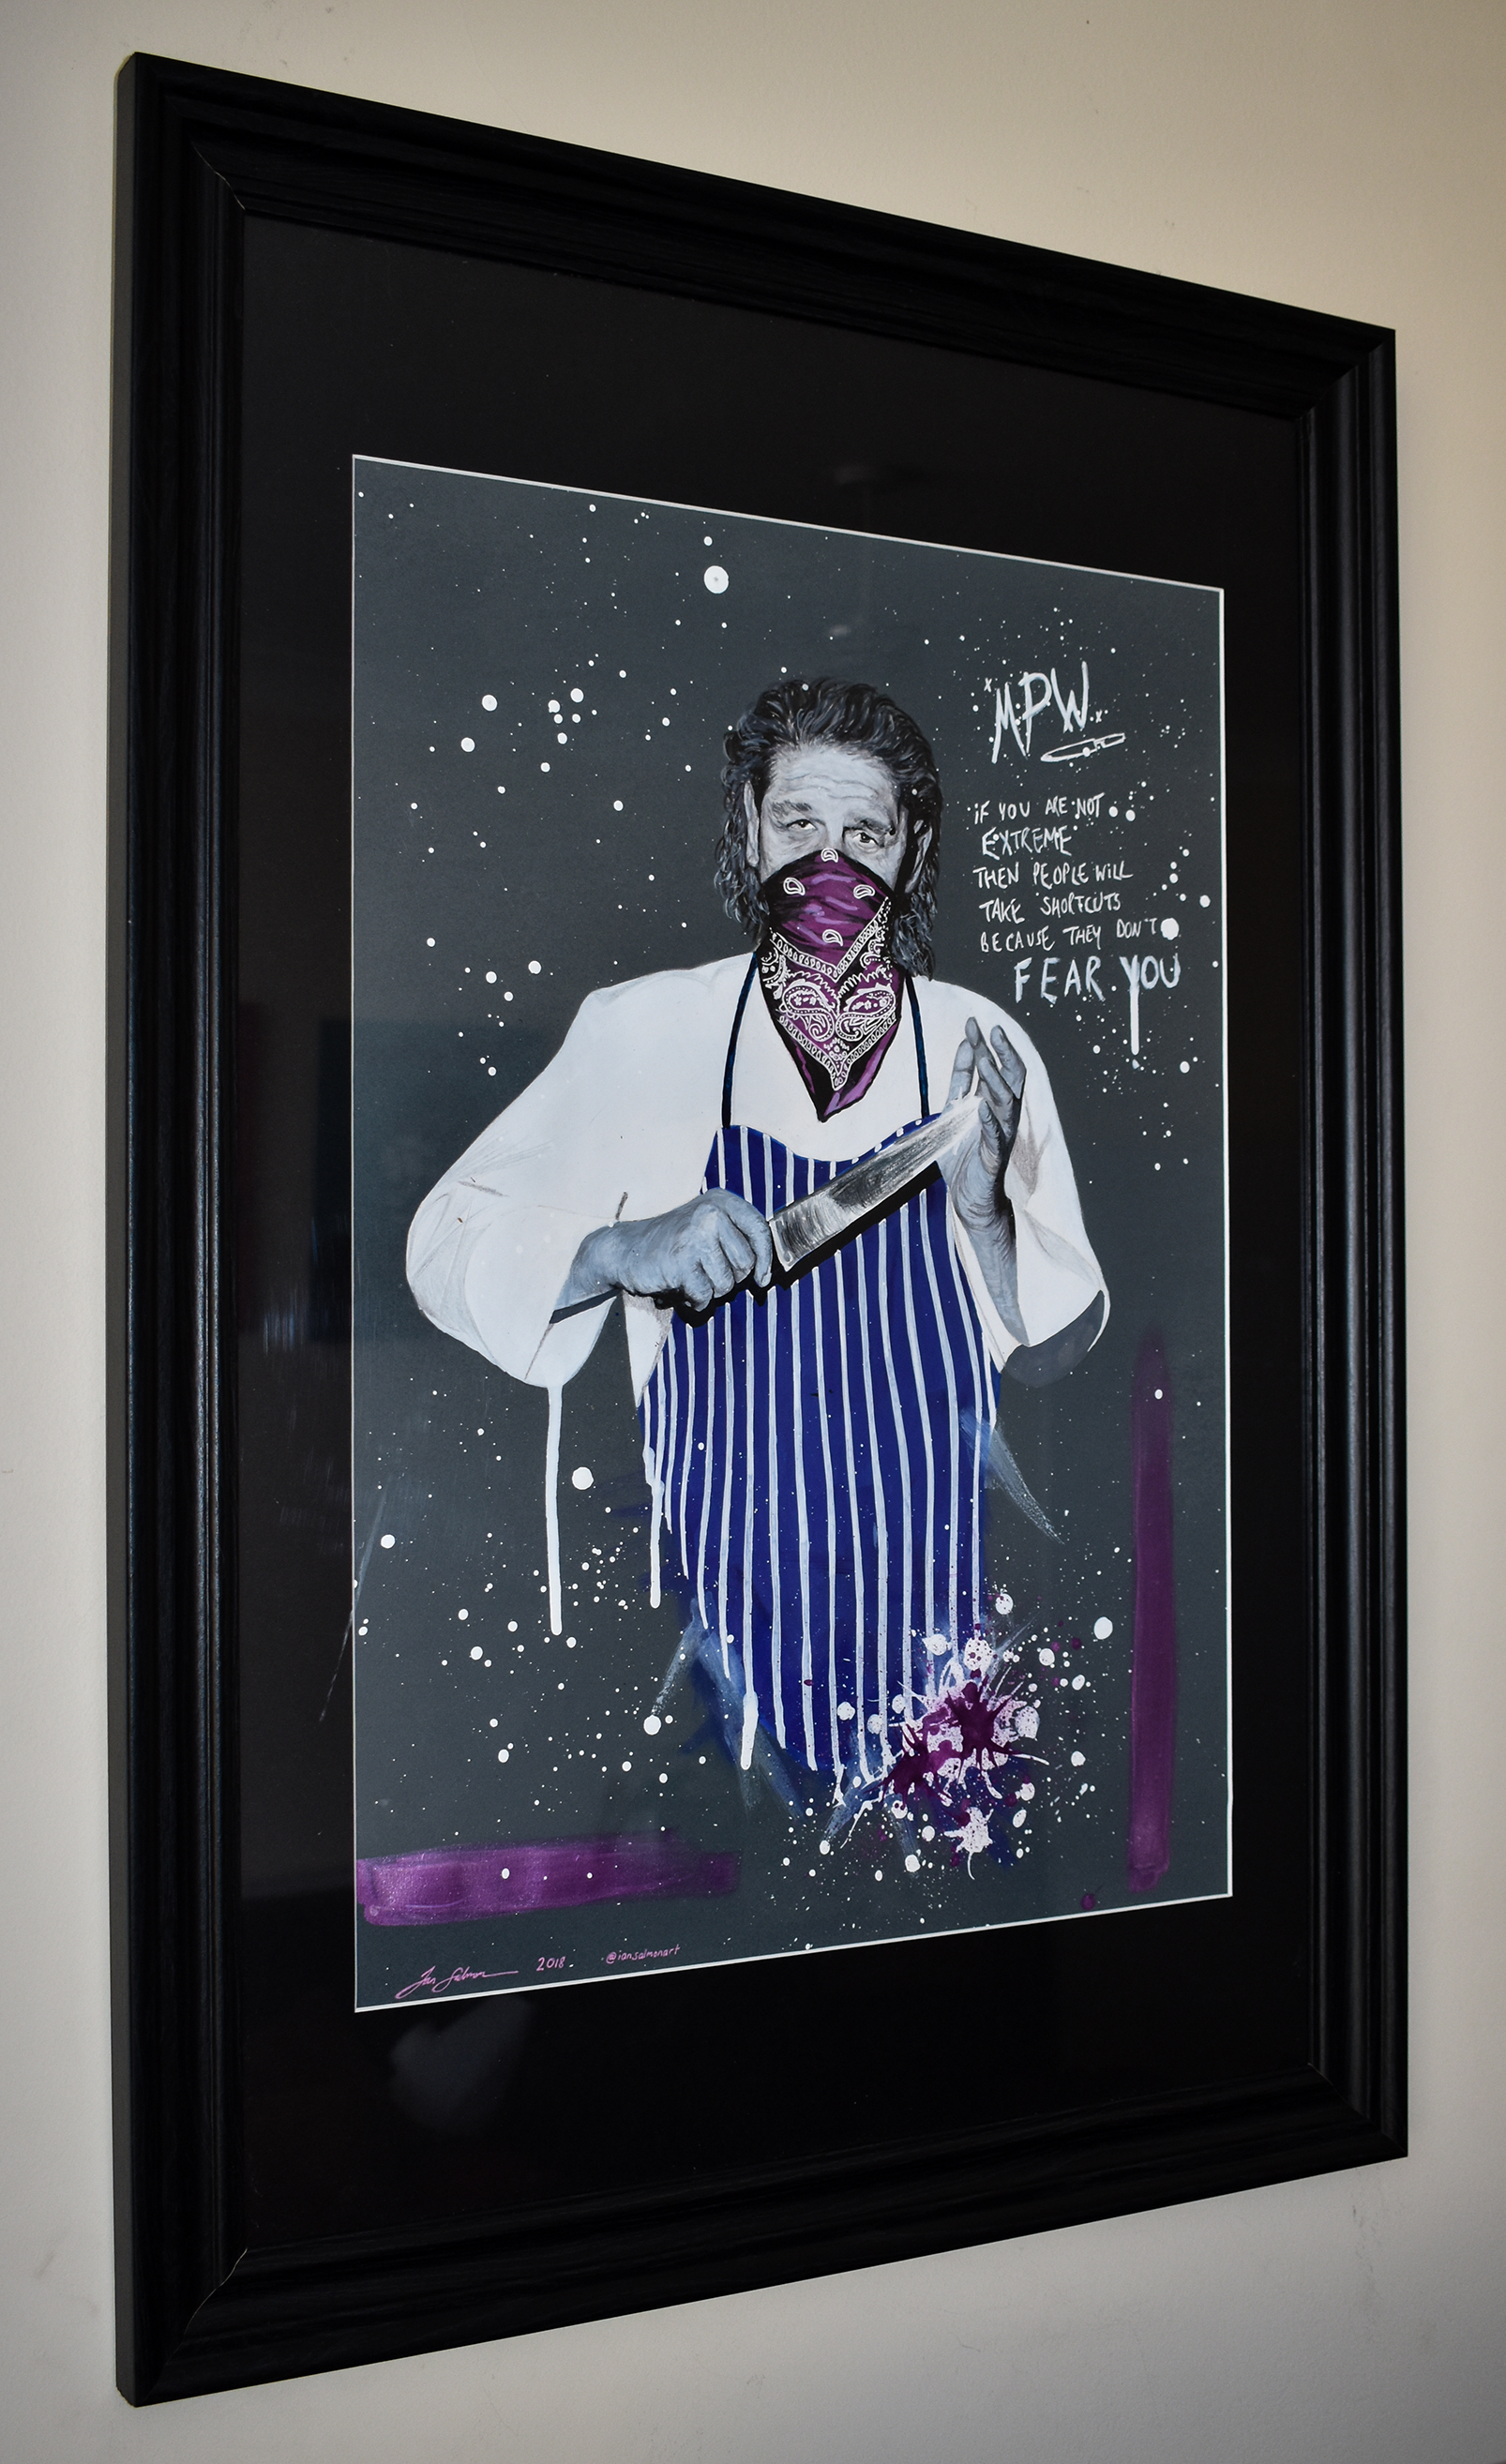 Marco Pierre White pop art portrait 18 framed.jpg